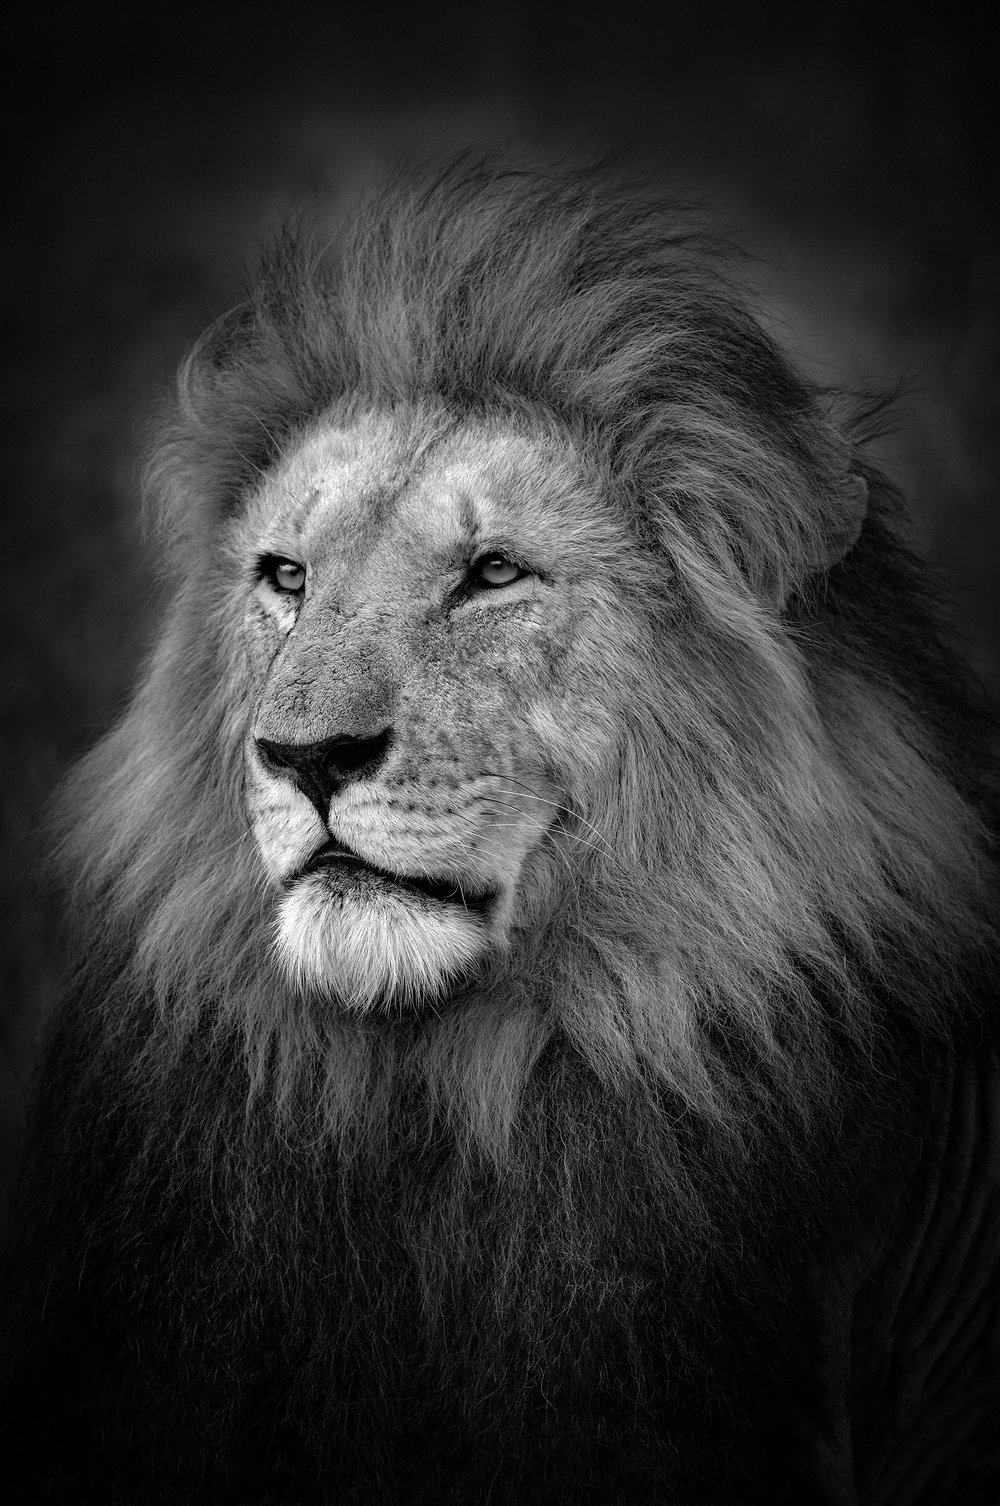 The King, Masai Mara, Kenya 2017  By Björn Persson  Available in 6 different sizes, Price from 10.000 SEK